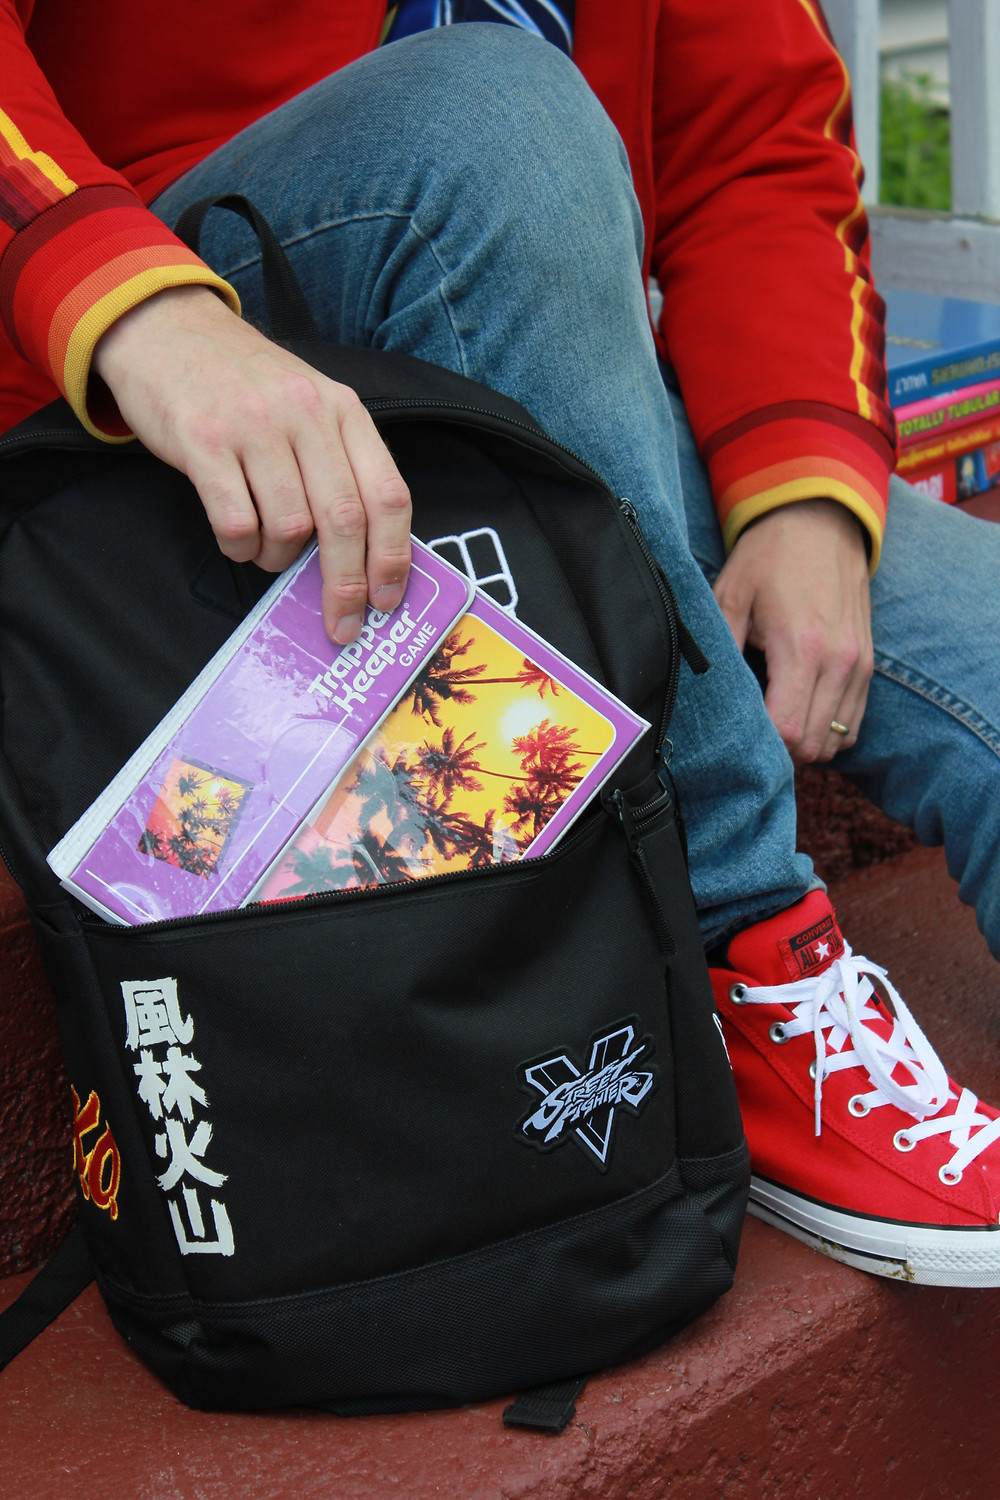 The Trapper Keeper Game from Big G Creative in a Street Fighter V backpack.